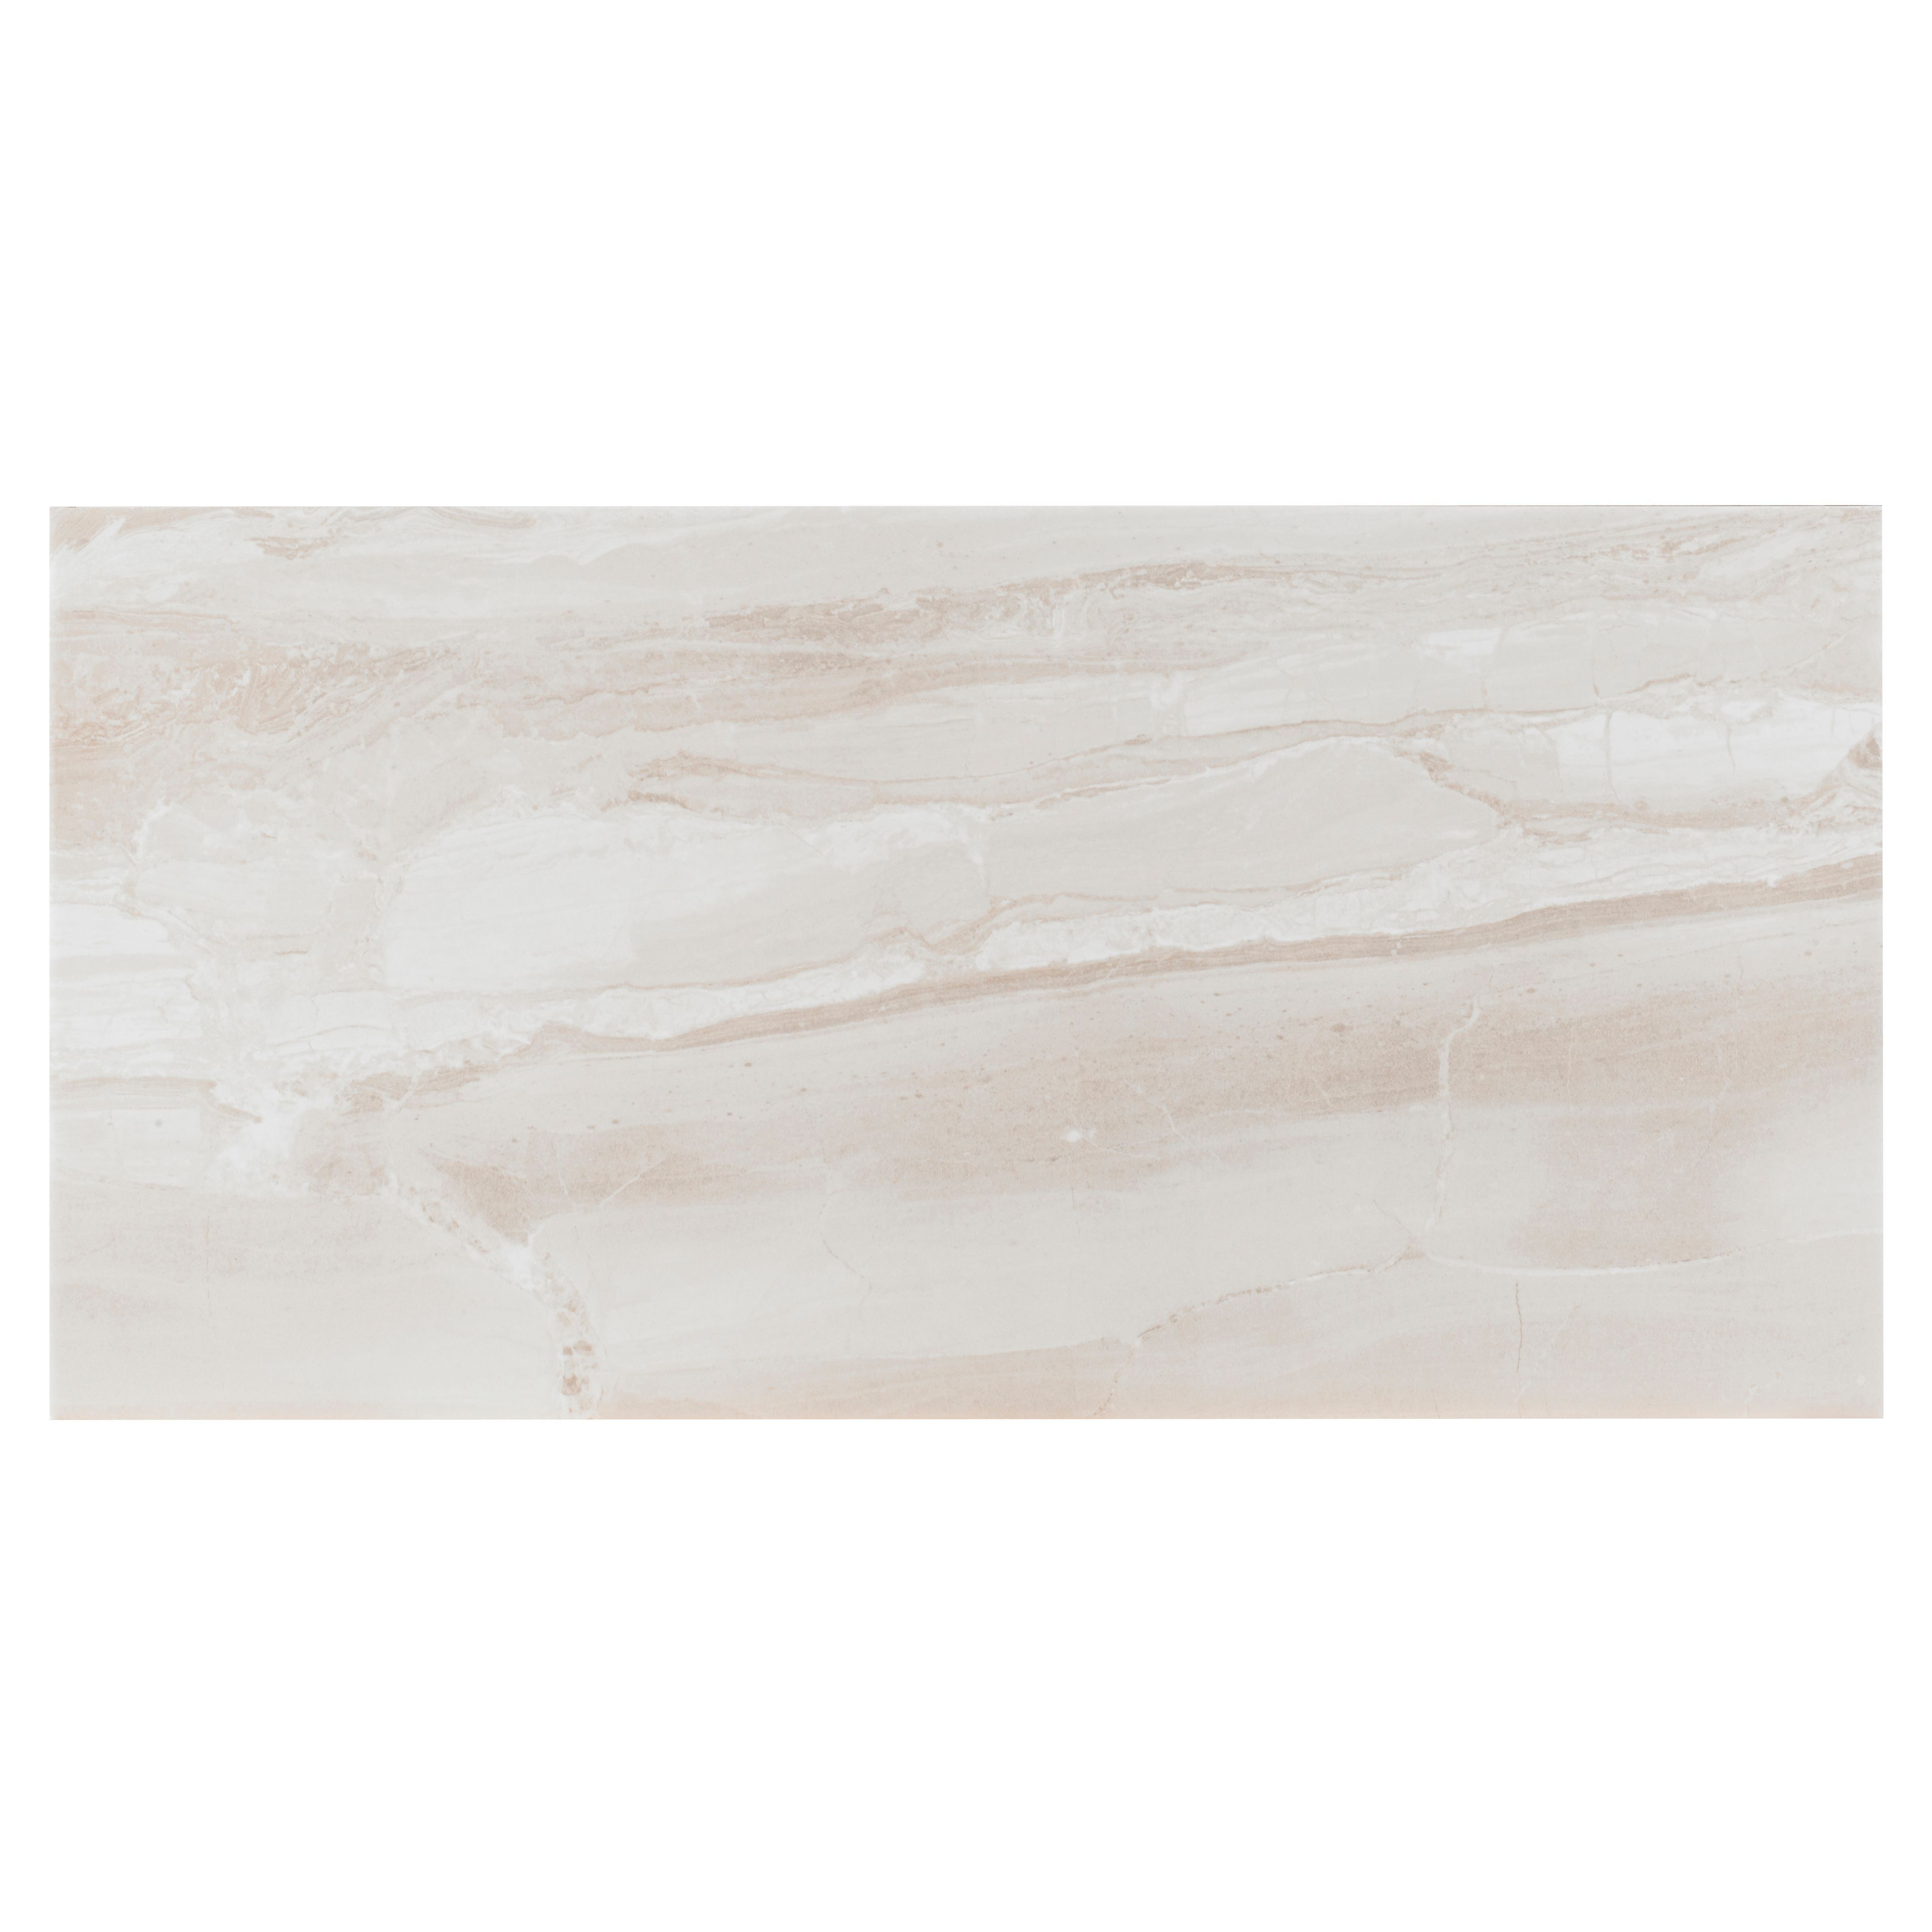 Fossilised wood sand wood effect stone ceramic wall floor tile fossilised wood sand wood effect stone ceramic wall floor tile pack of 6 l598mm w298mm departments diy at bq ppazfo